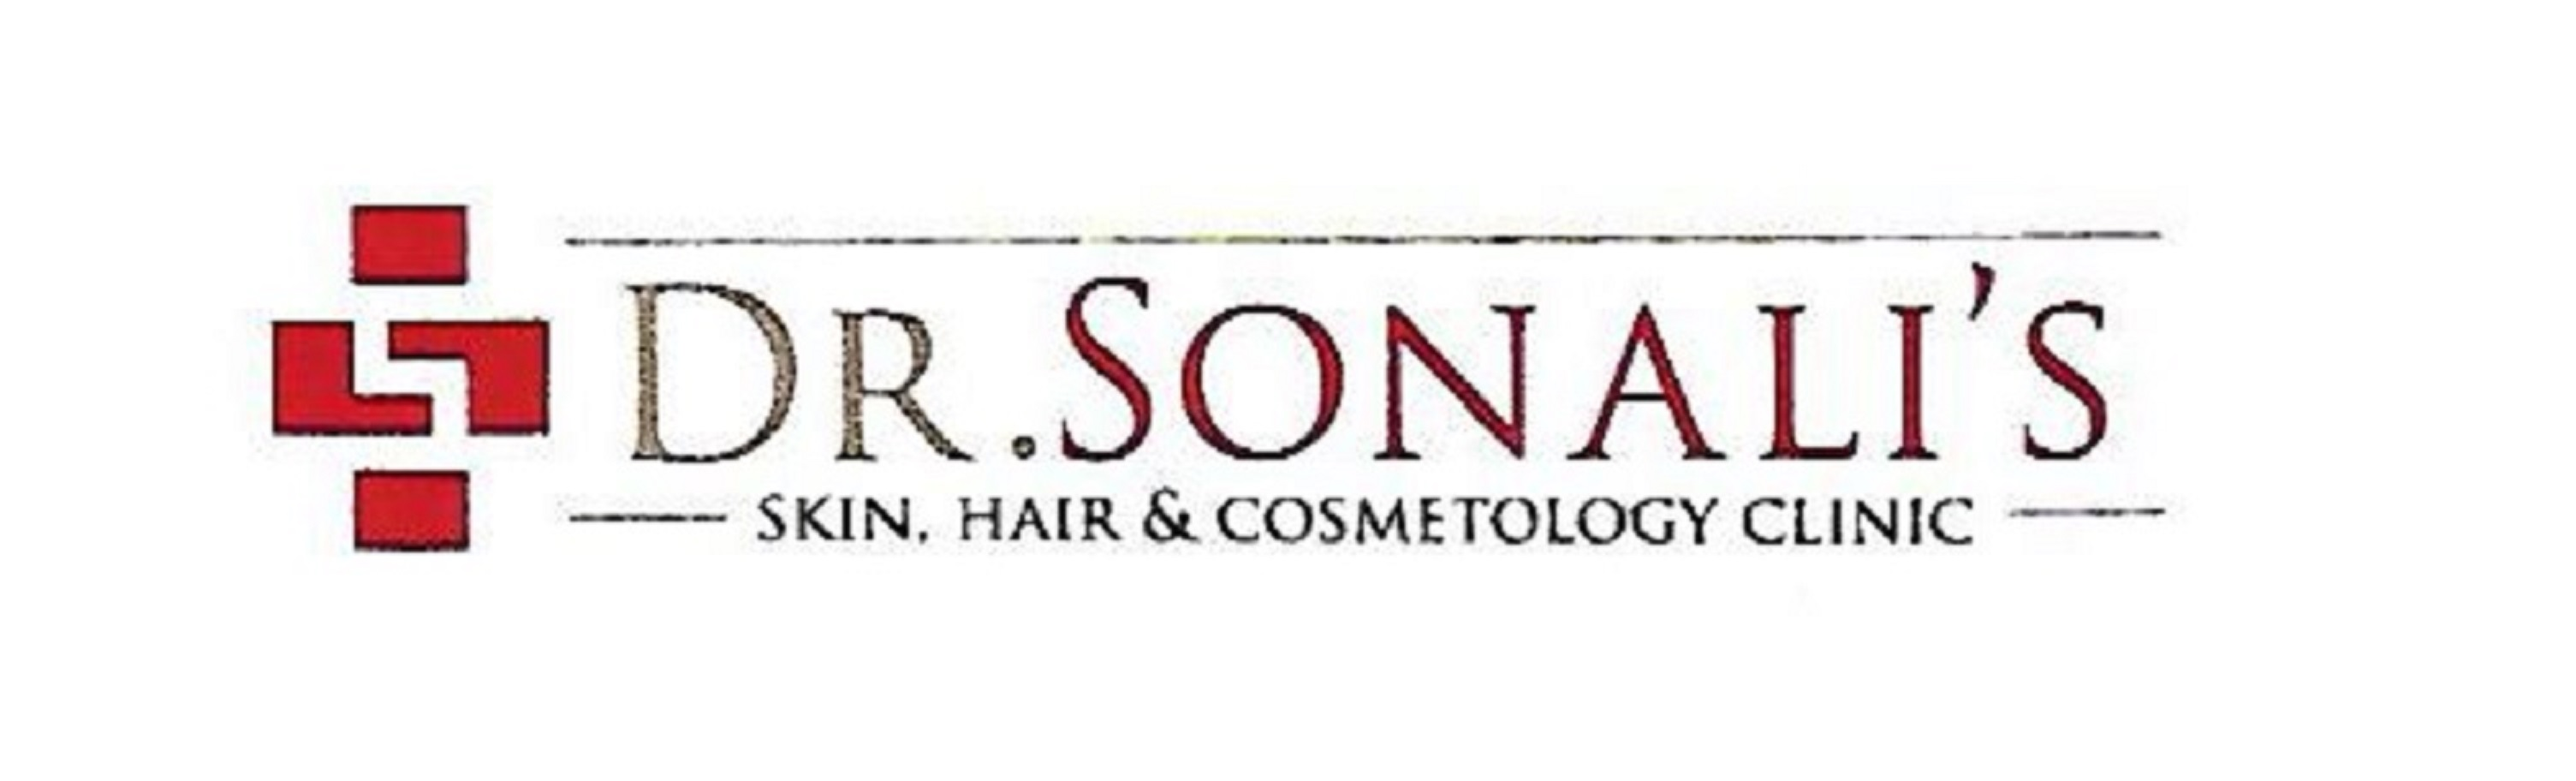 Dr. Sonali's Skin, Hair & Cosmetology Clinic